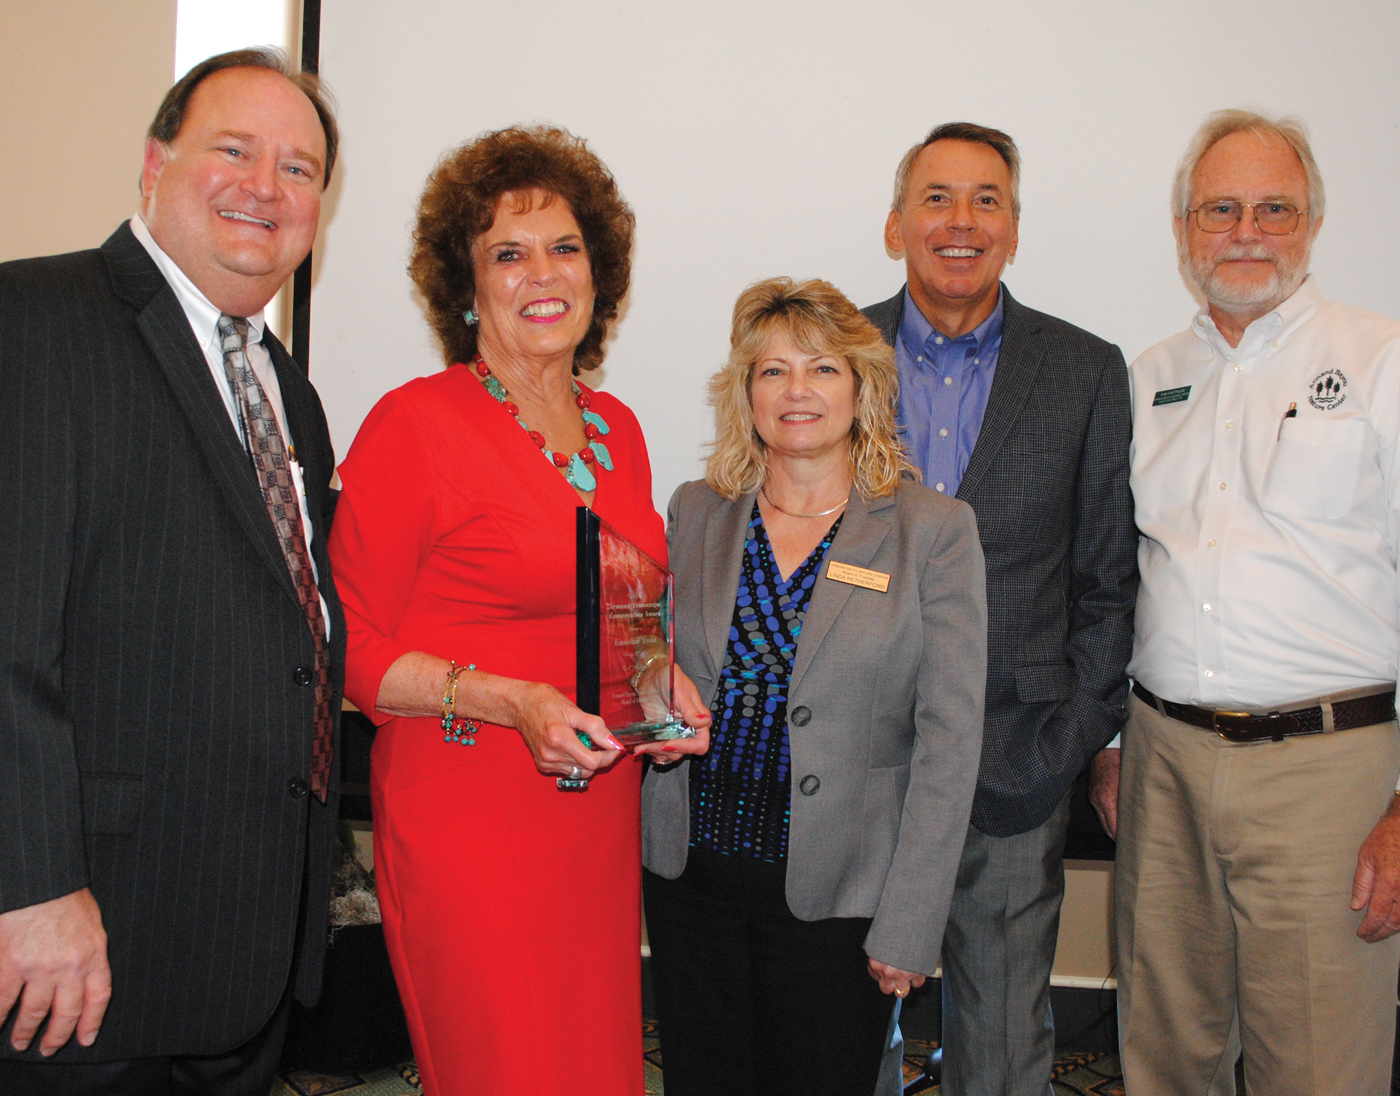 Emmeline Dodd holds the Conservation Award she was presented by the Armand Bayou Nature Center Board of Directors at a luncheon at Bay Oaks Country Club. With her are, from left, BAHEP executive and emcee Dan Seal, ABNC Board of Directors President Linda Retherford, Trendmaker Homes President Will Holder and ABNC Executive Director Tom Kartrude.